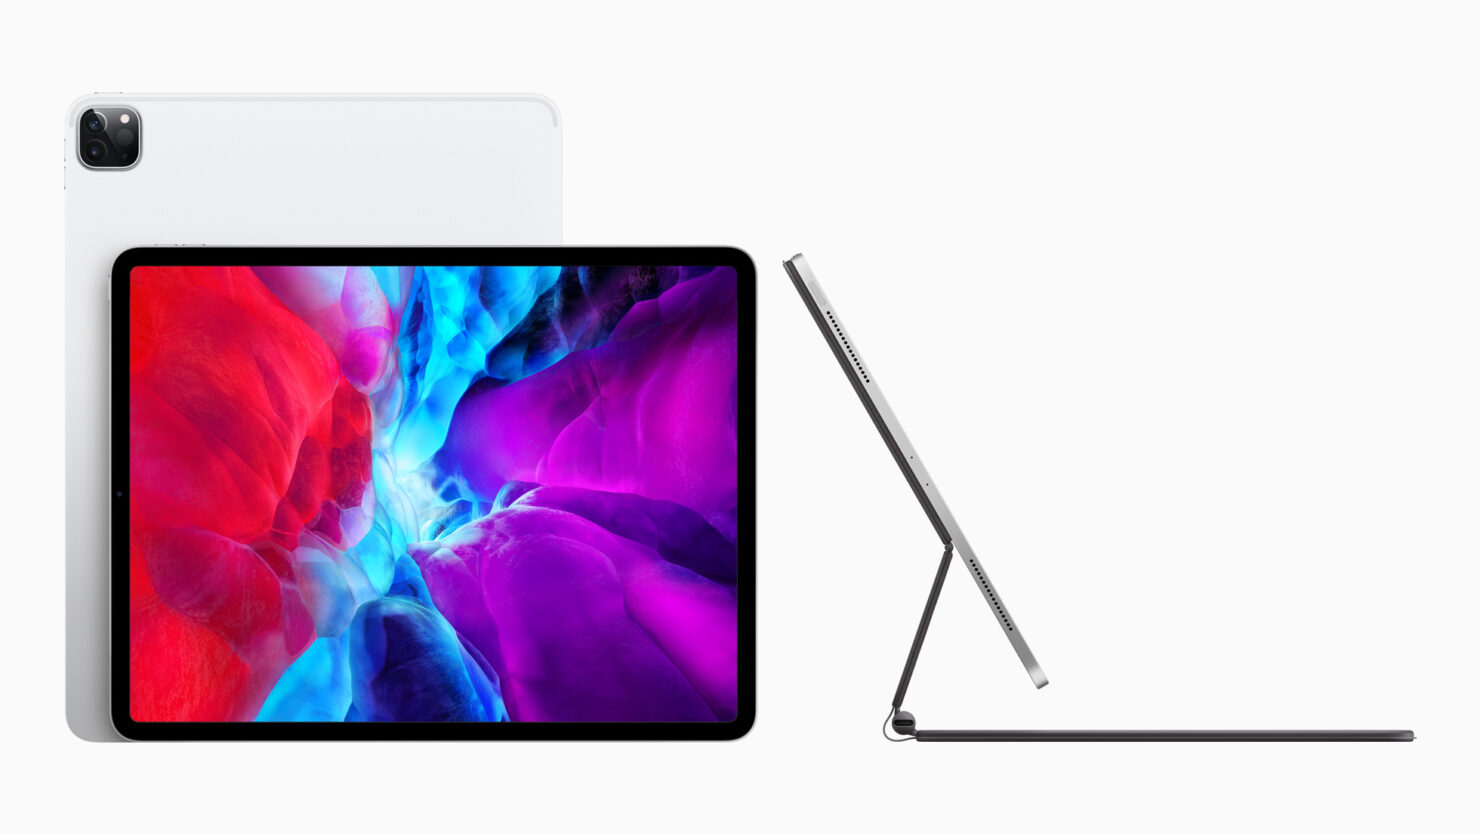 New 12.9-inch mini-LED iPad Pro Once More Expected in Q1, 2021, as Apple Supplier Optimisic About Demand in Coming Months